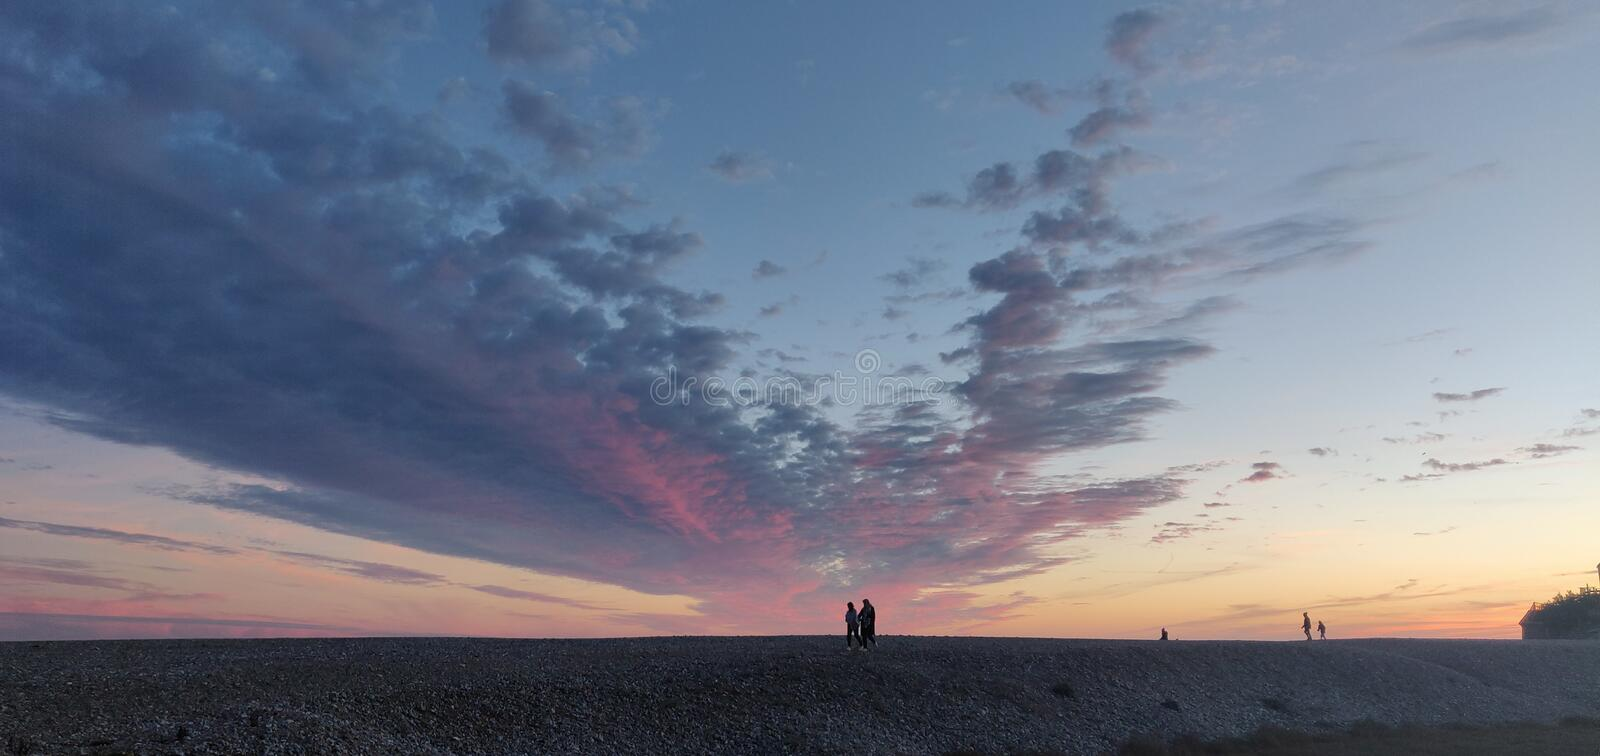 Brighton Sunset photographie stock libre de droits